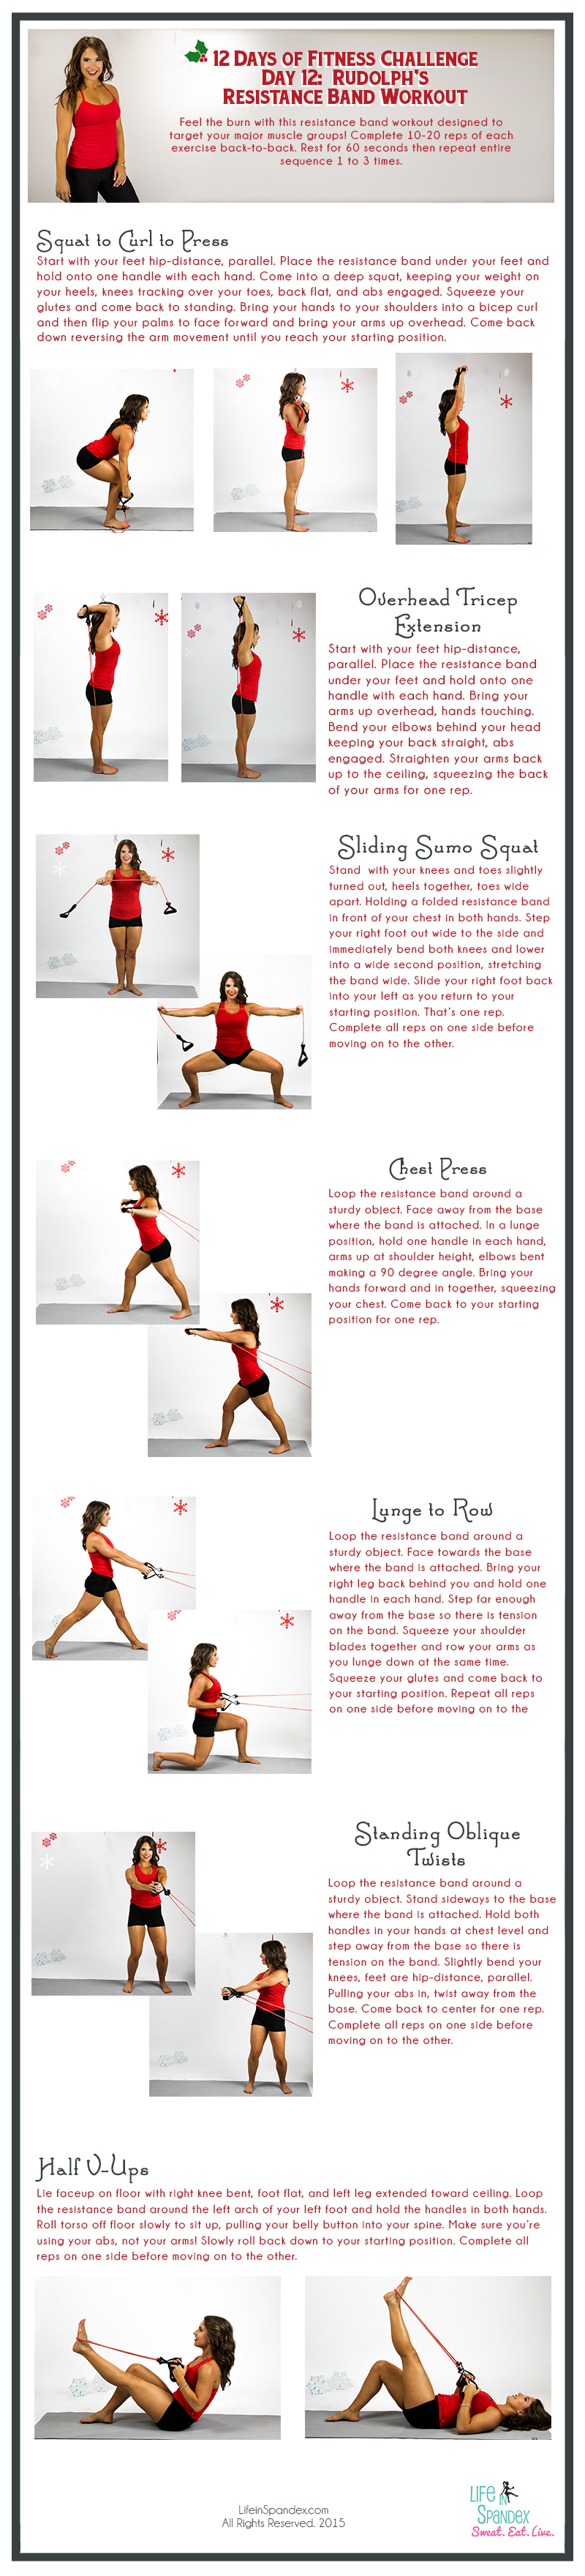 It's just a picture of Agile Printable Resistance Band Exercises